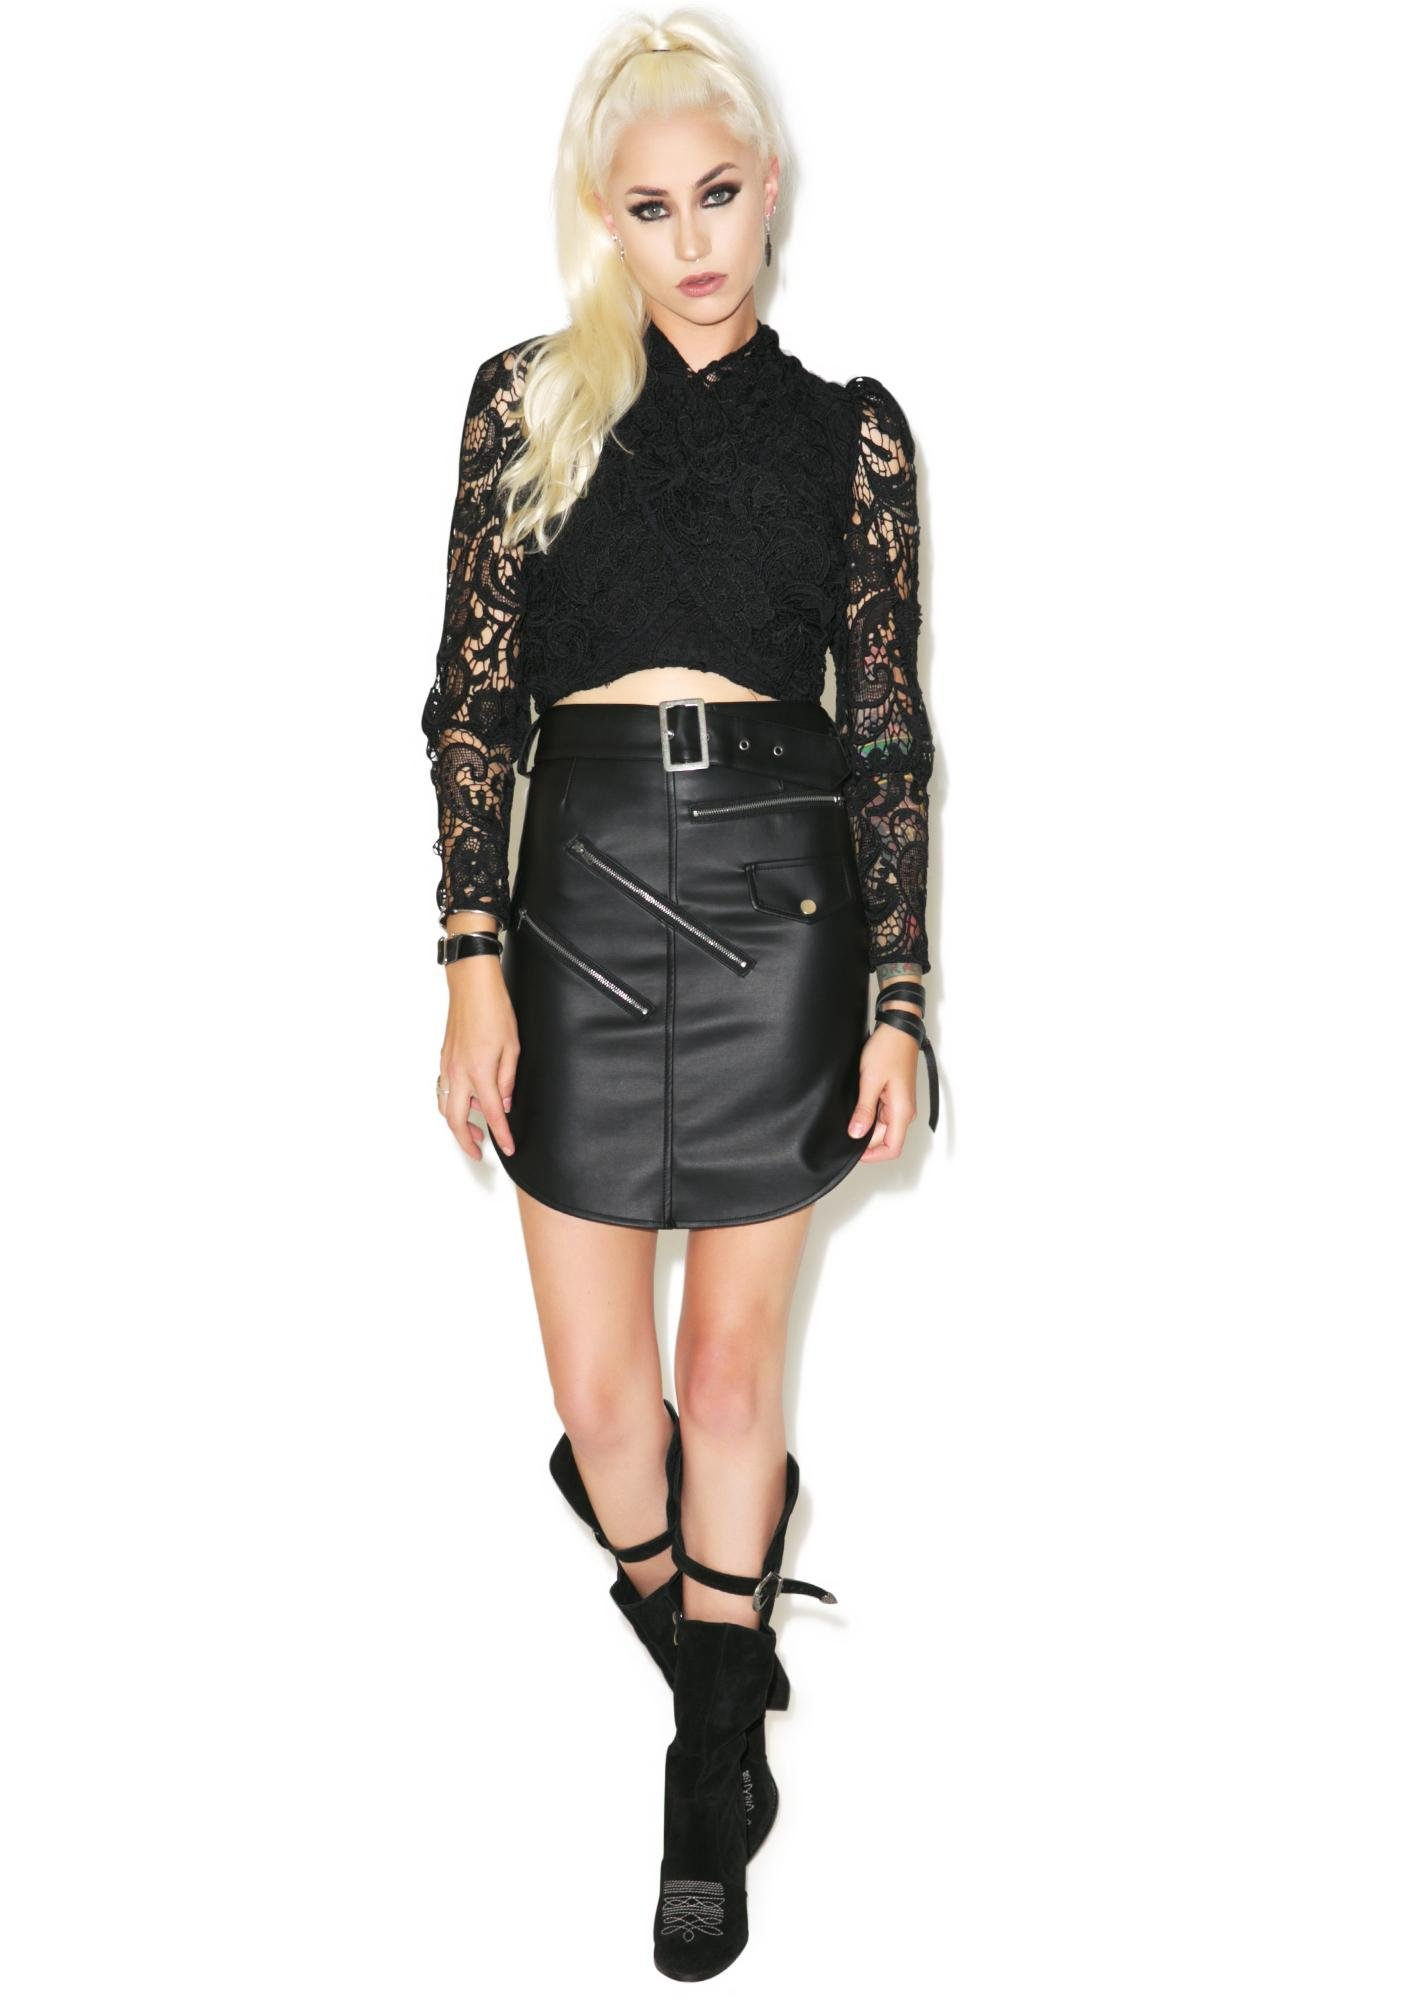 Nightwalker Outlaw Leather Skirt